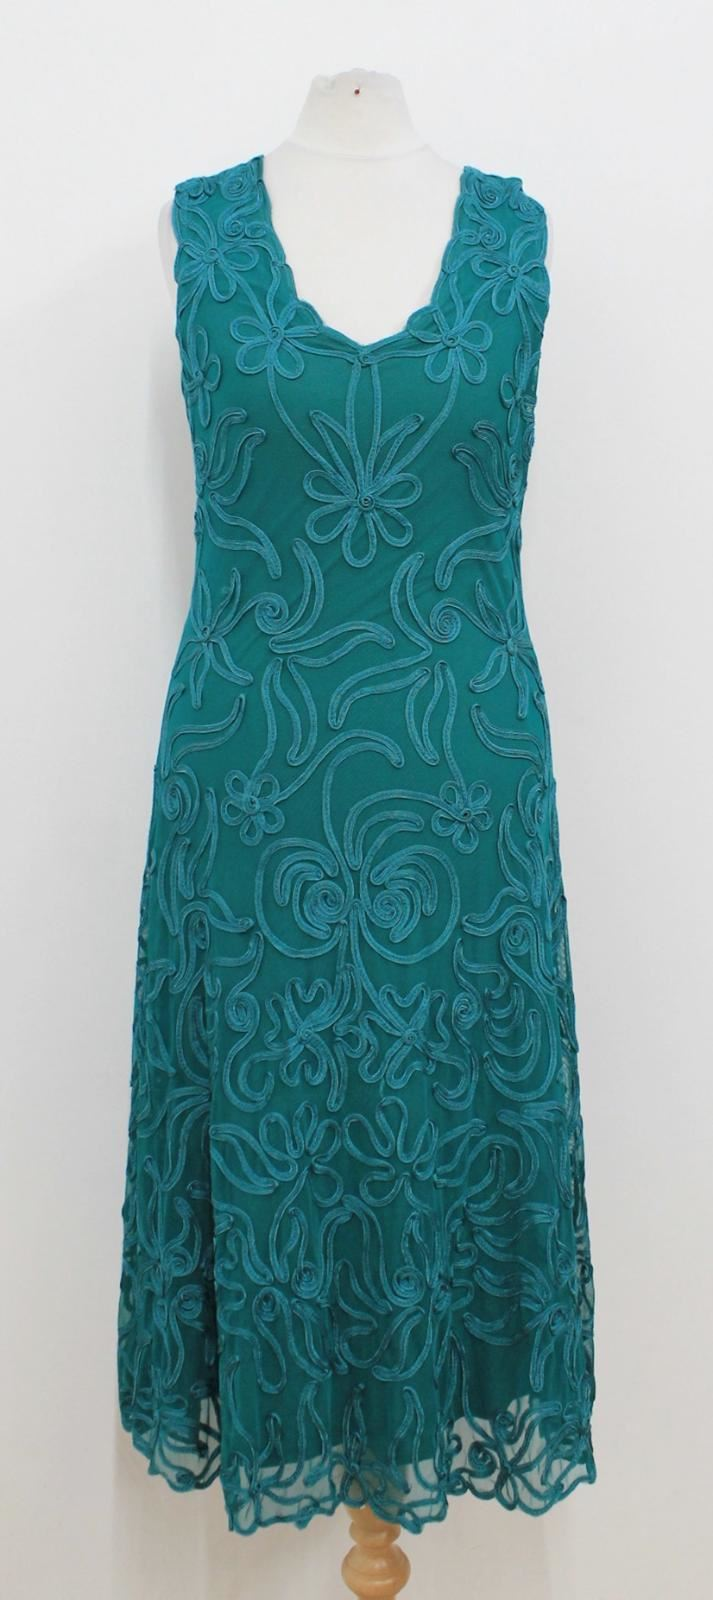 PHASE EIGHT Ladies Turquoise Embroiderot Sleeveless V-Neck Dress Größe Approx. S